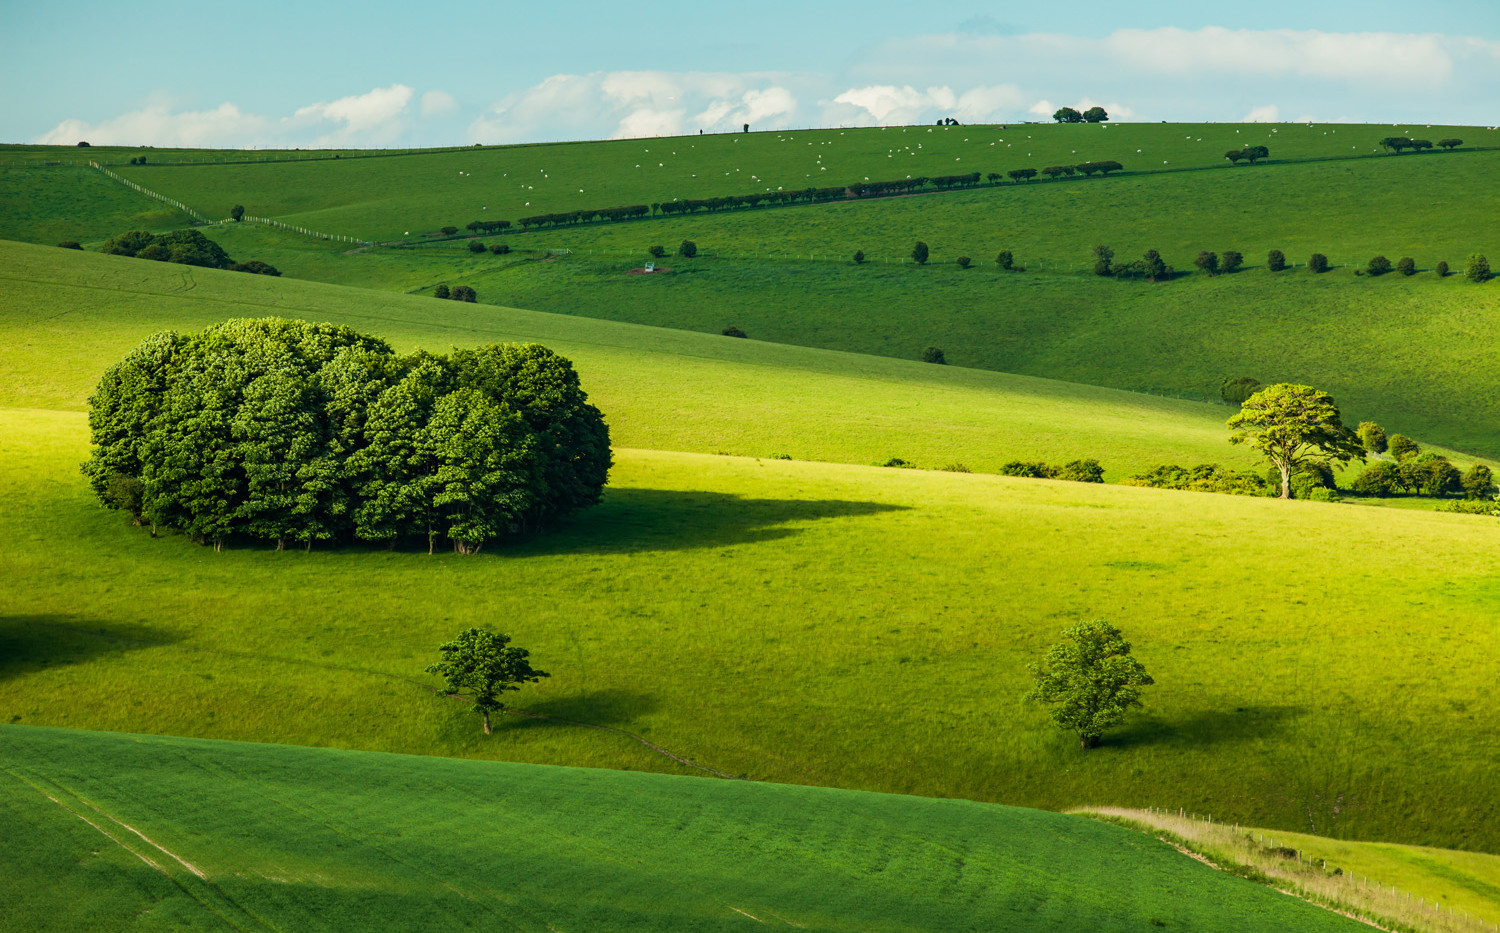 South Downs near Stanmer, East Sussex, 30th May 2017.